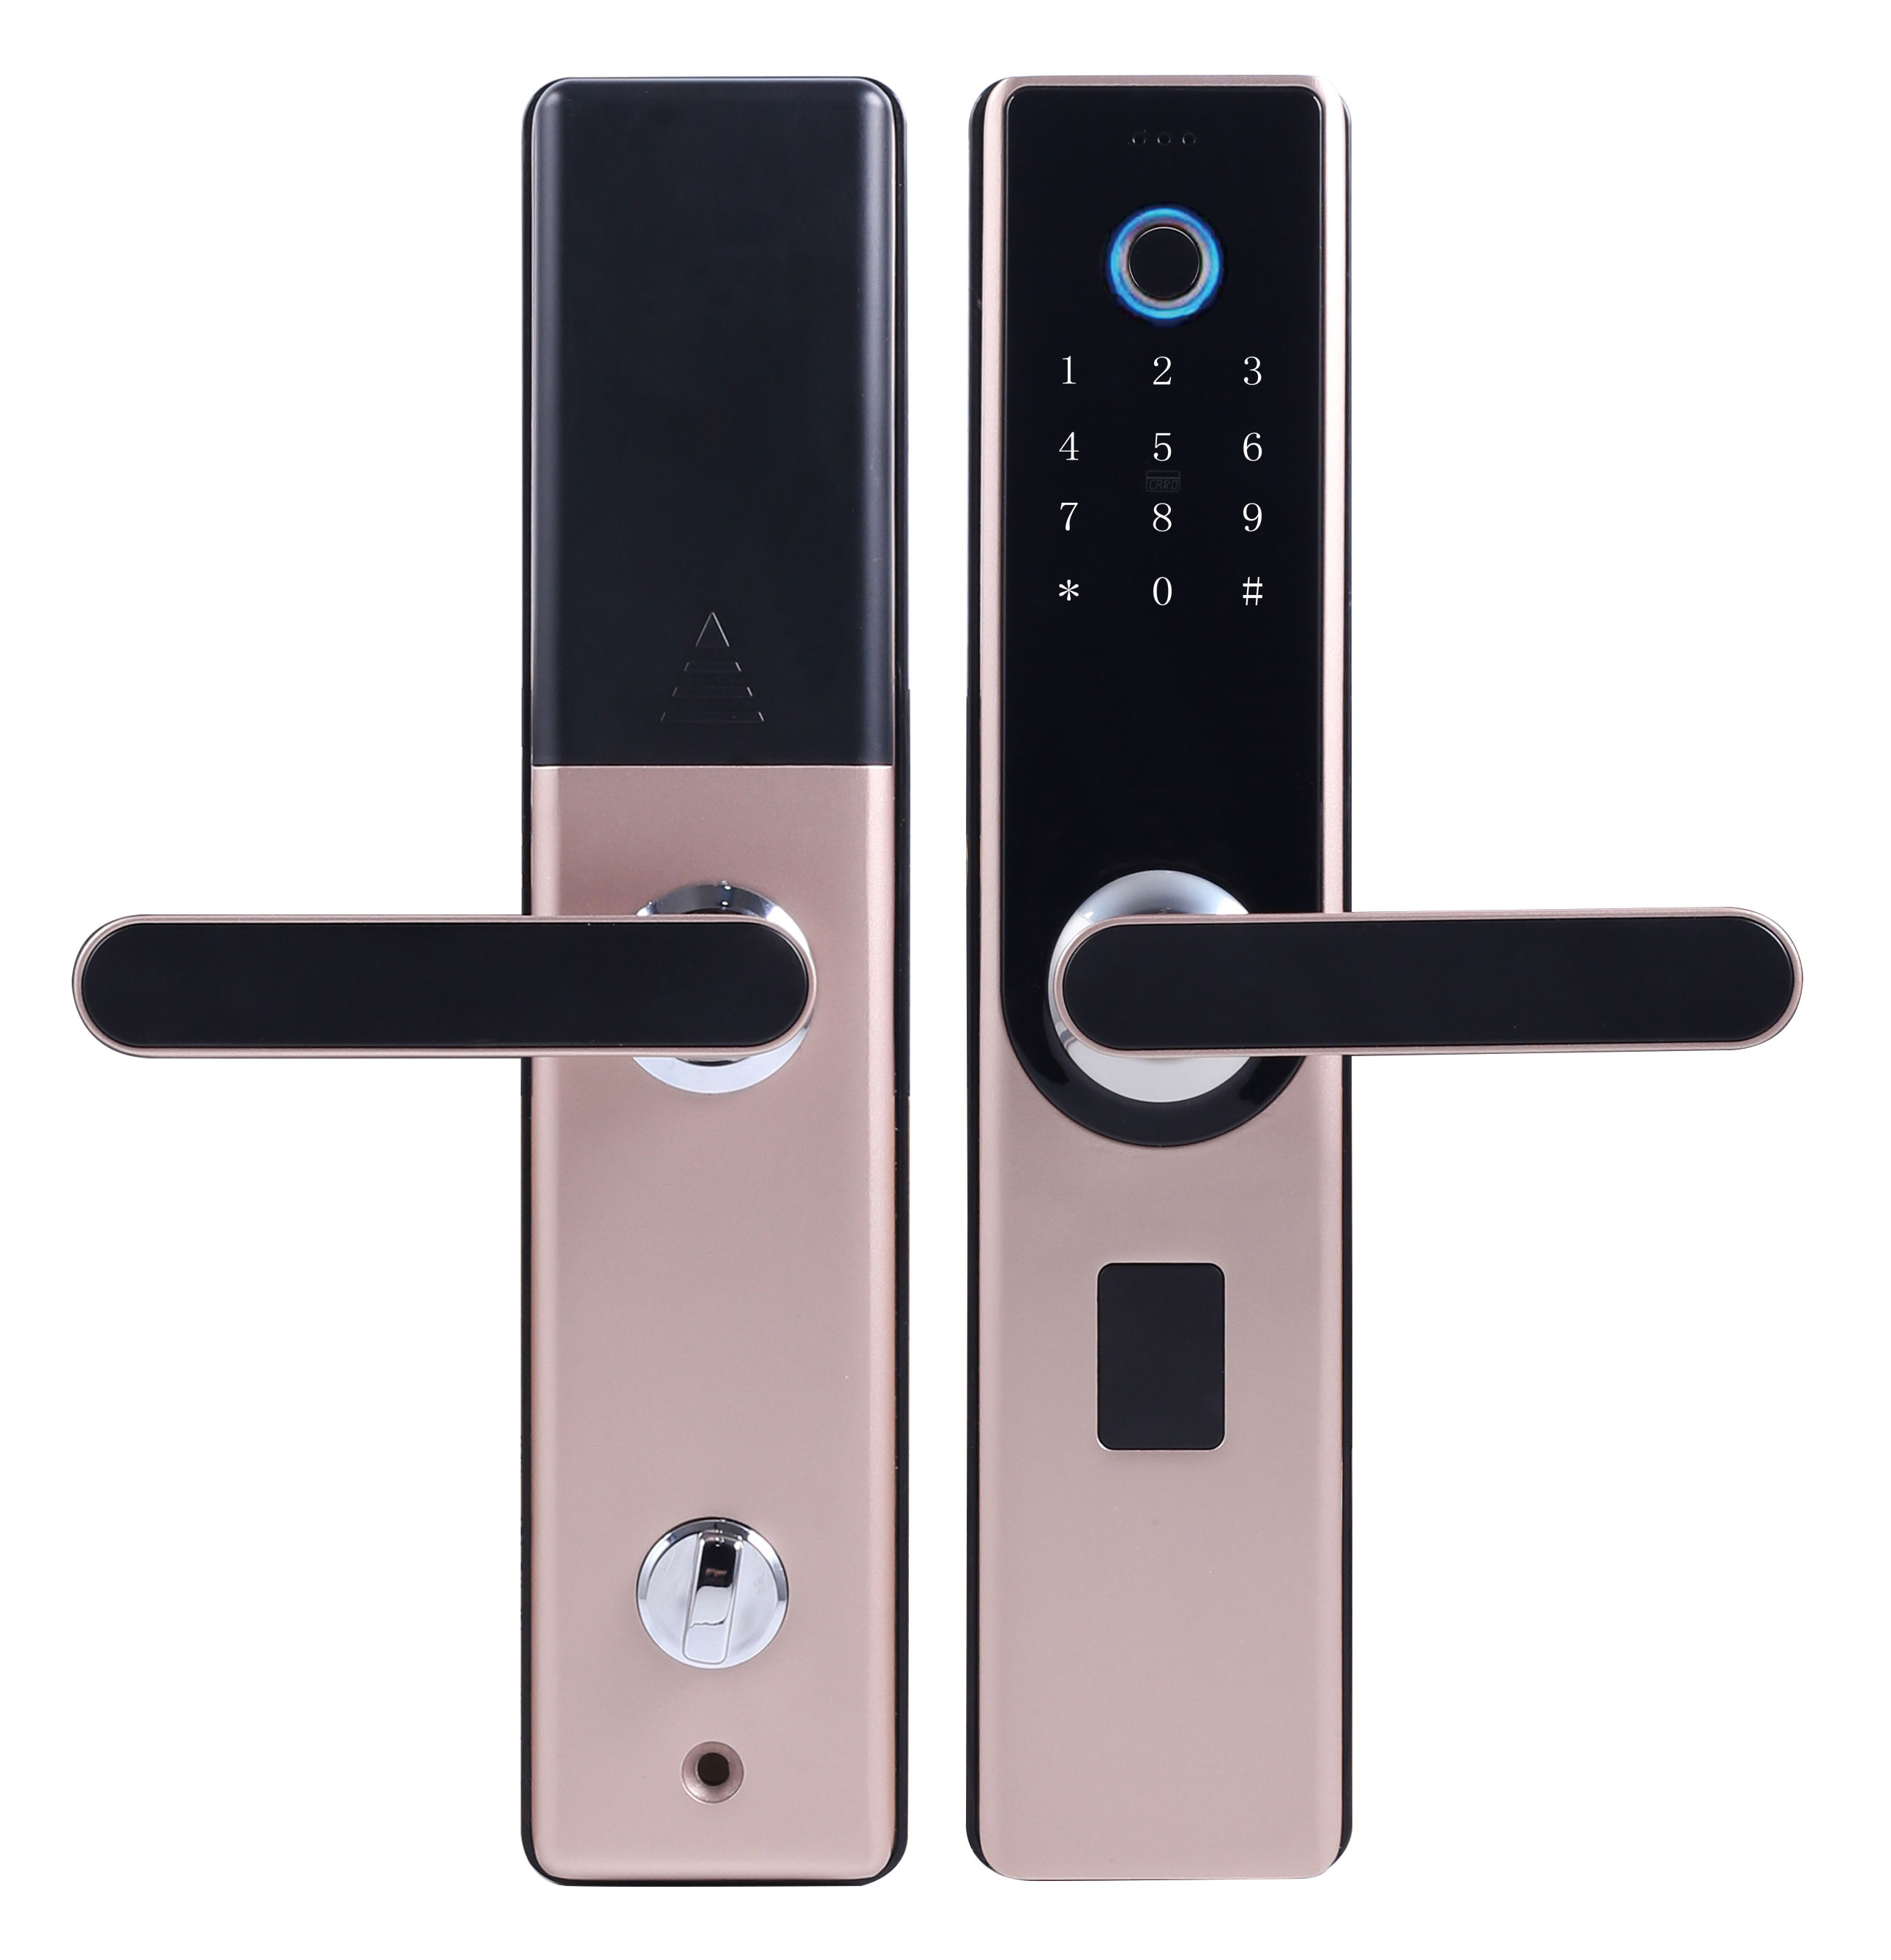 BUAN intelligent lock household security door fingerprint lock wood door general electronic security lock super class C Hotel password lock